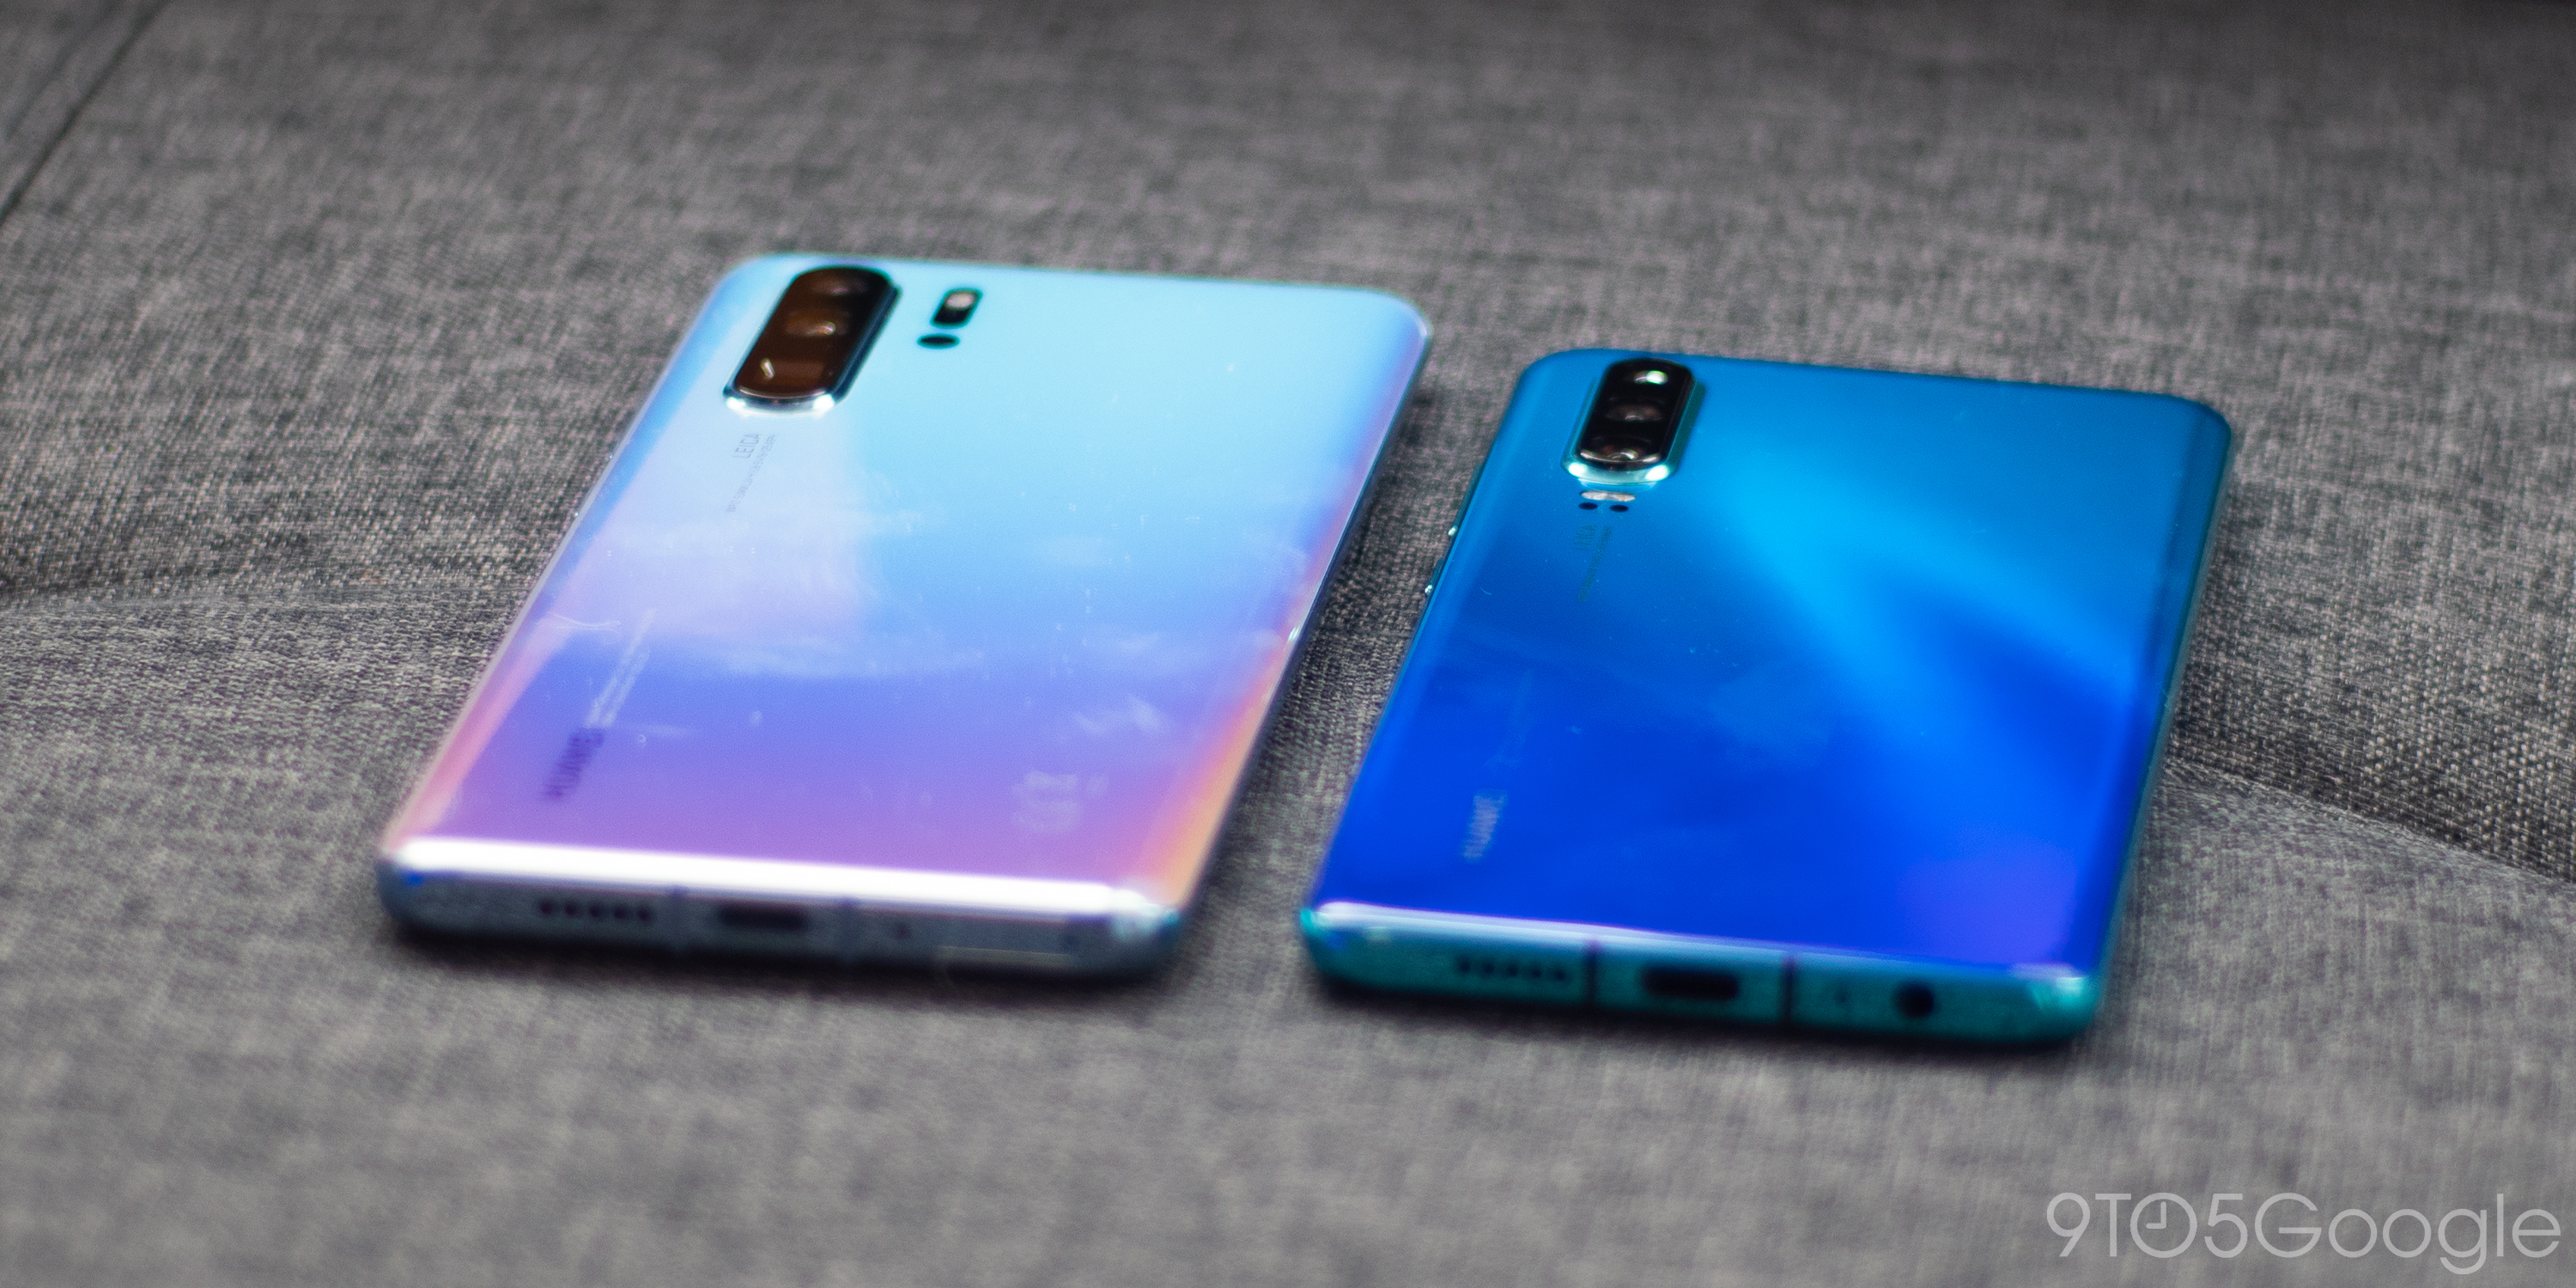 Huawei smartphone shipments have dropped 40% in the last month due to US sanctions